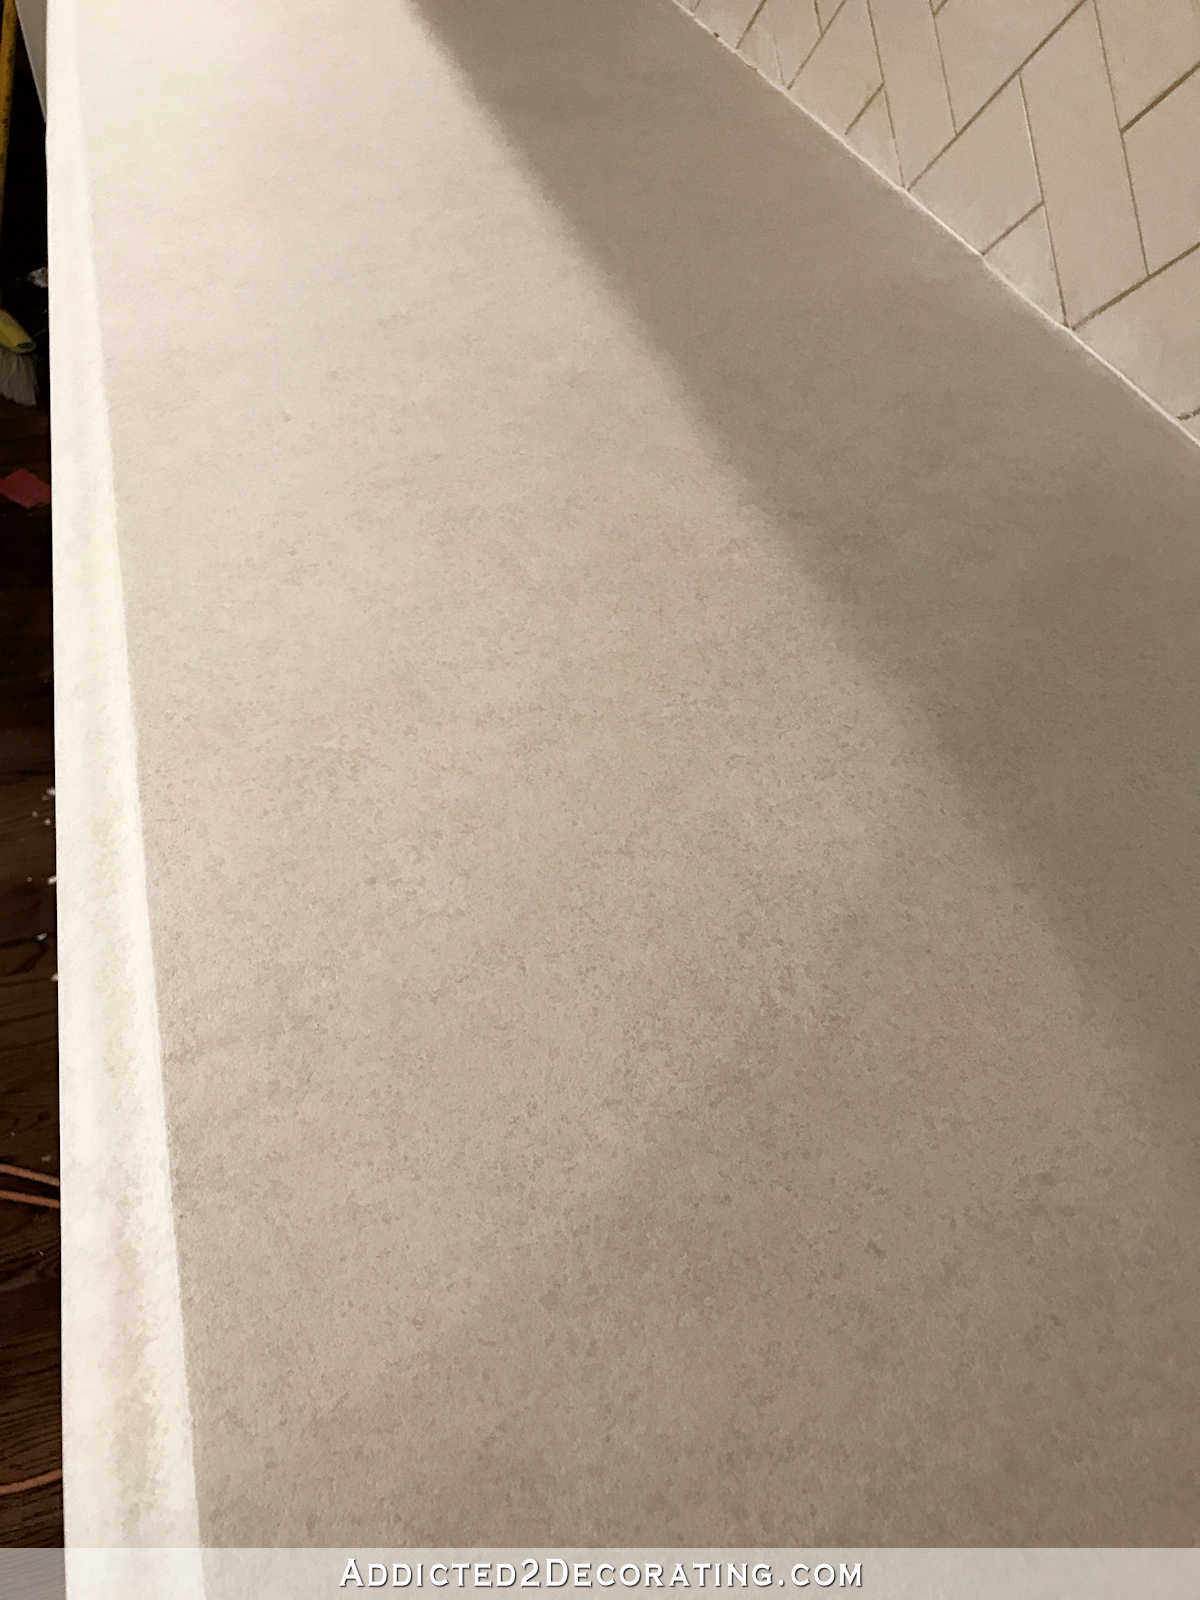 refinishing concrete countertops - 29 - long countertop with all five coats of sponged paint - closeup